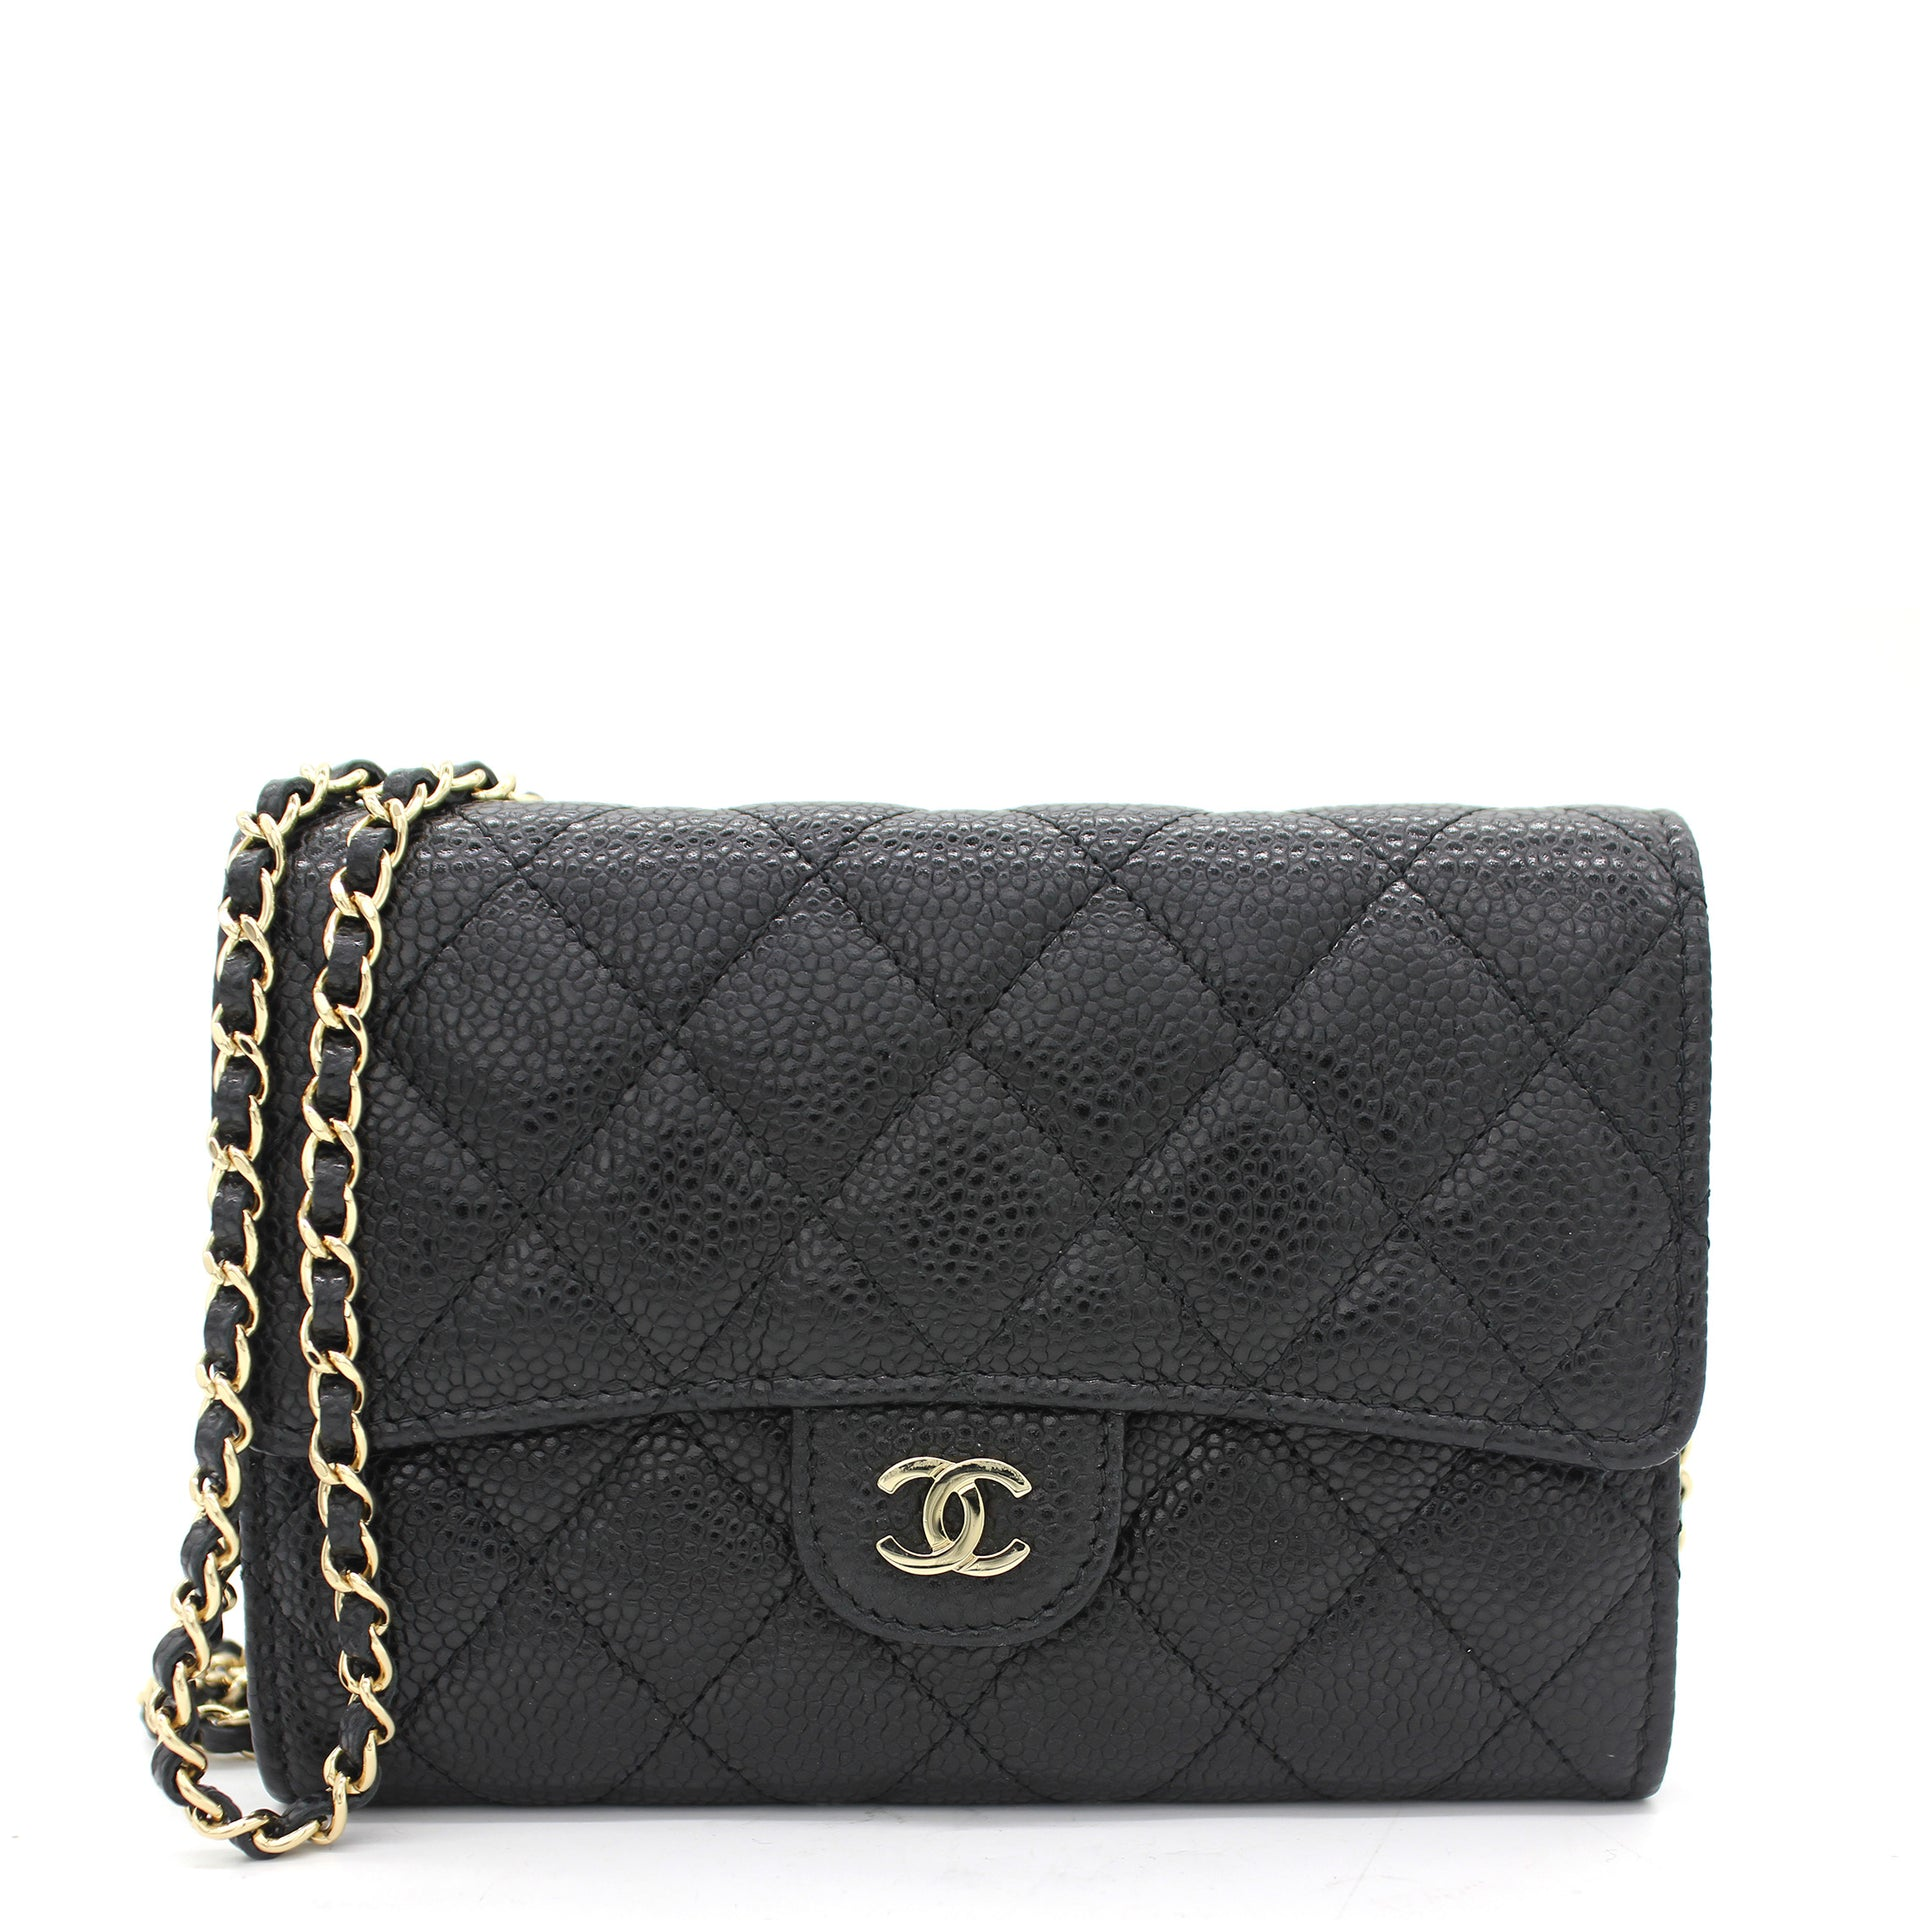 Quilted Leather Mini WOC Chain Clutch Bag Black Caviar